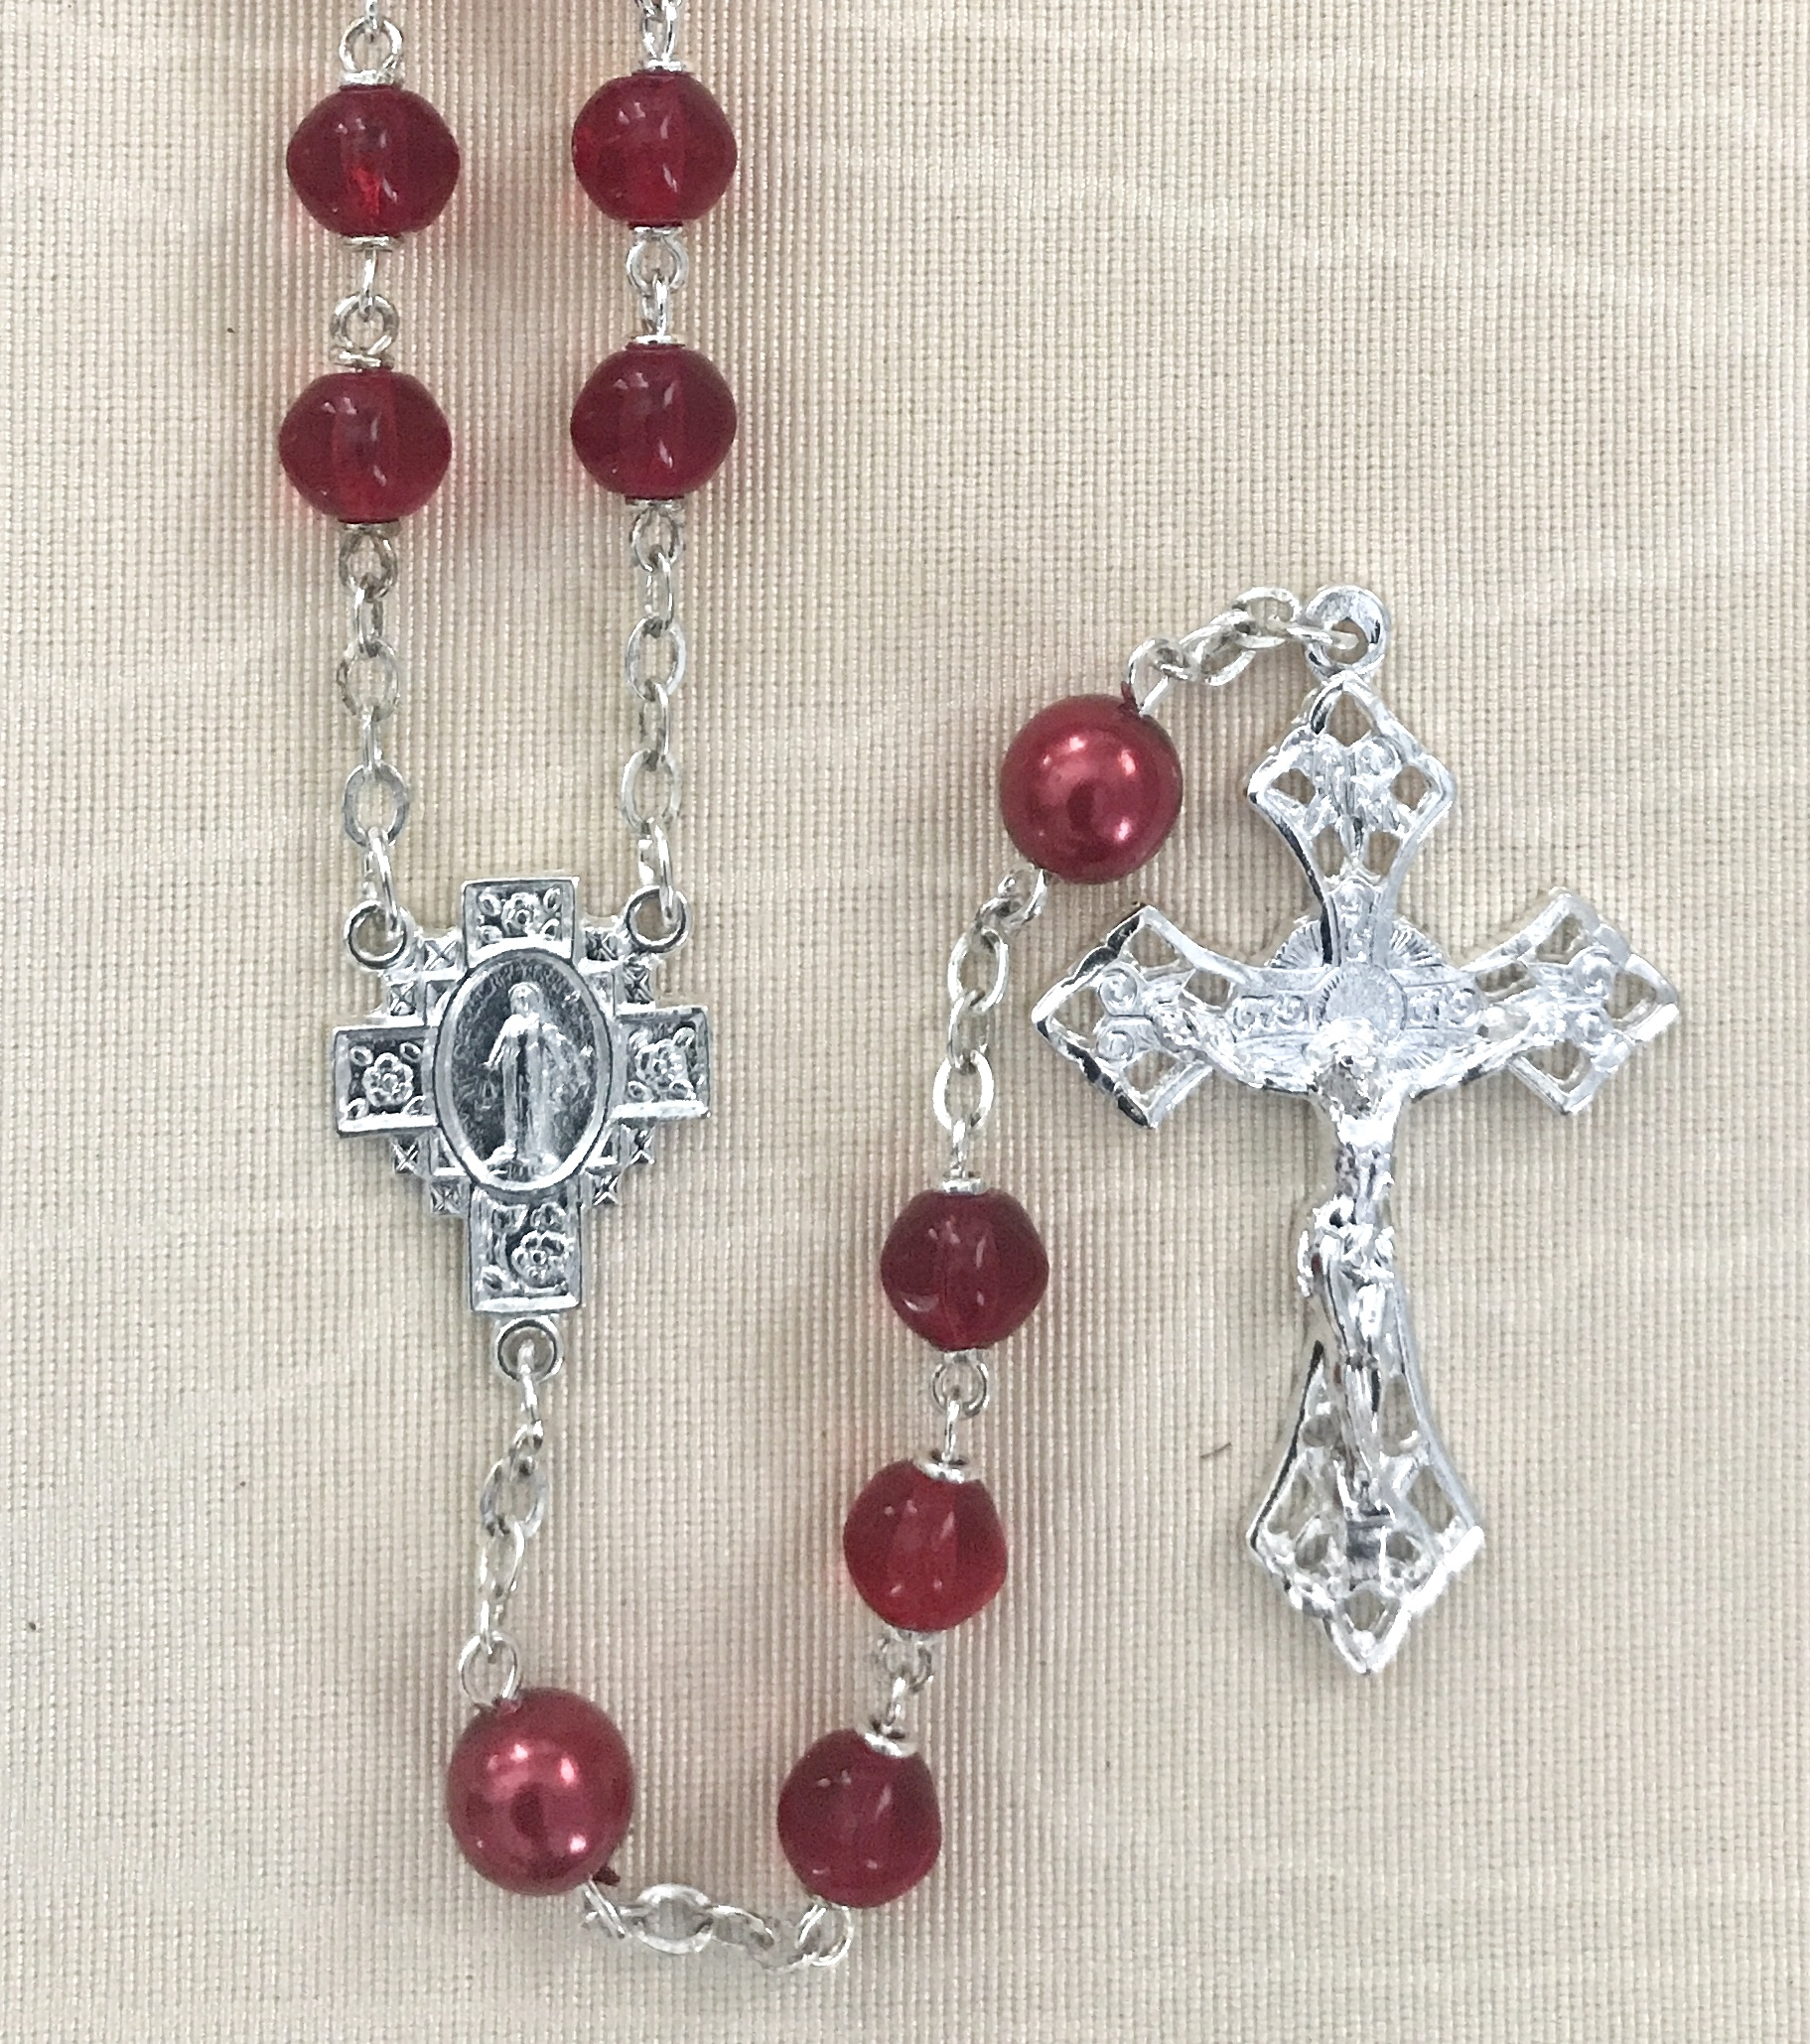 7mm RUBY WITH RED PEARL OUR FATHER BEADS STERLING SILVER PLATED ROSARY GIFT BOXED